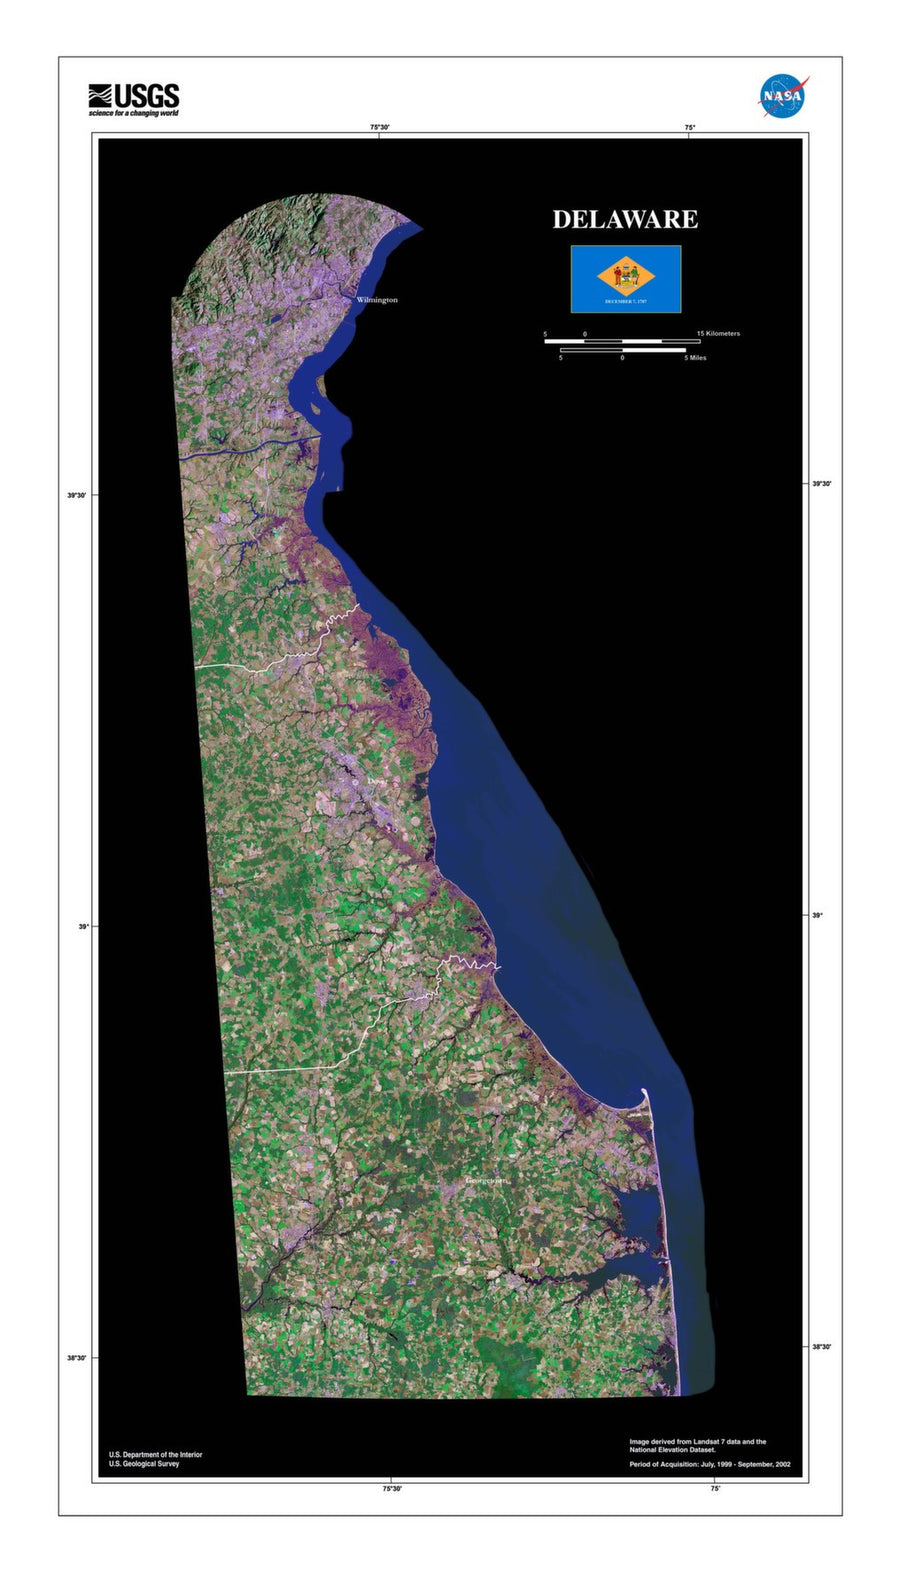 Delaware Satellite Imagery State Map Poster - TerraPrints.com